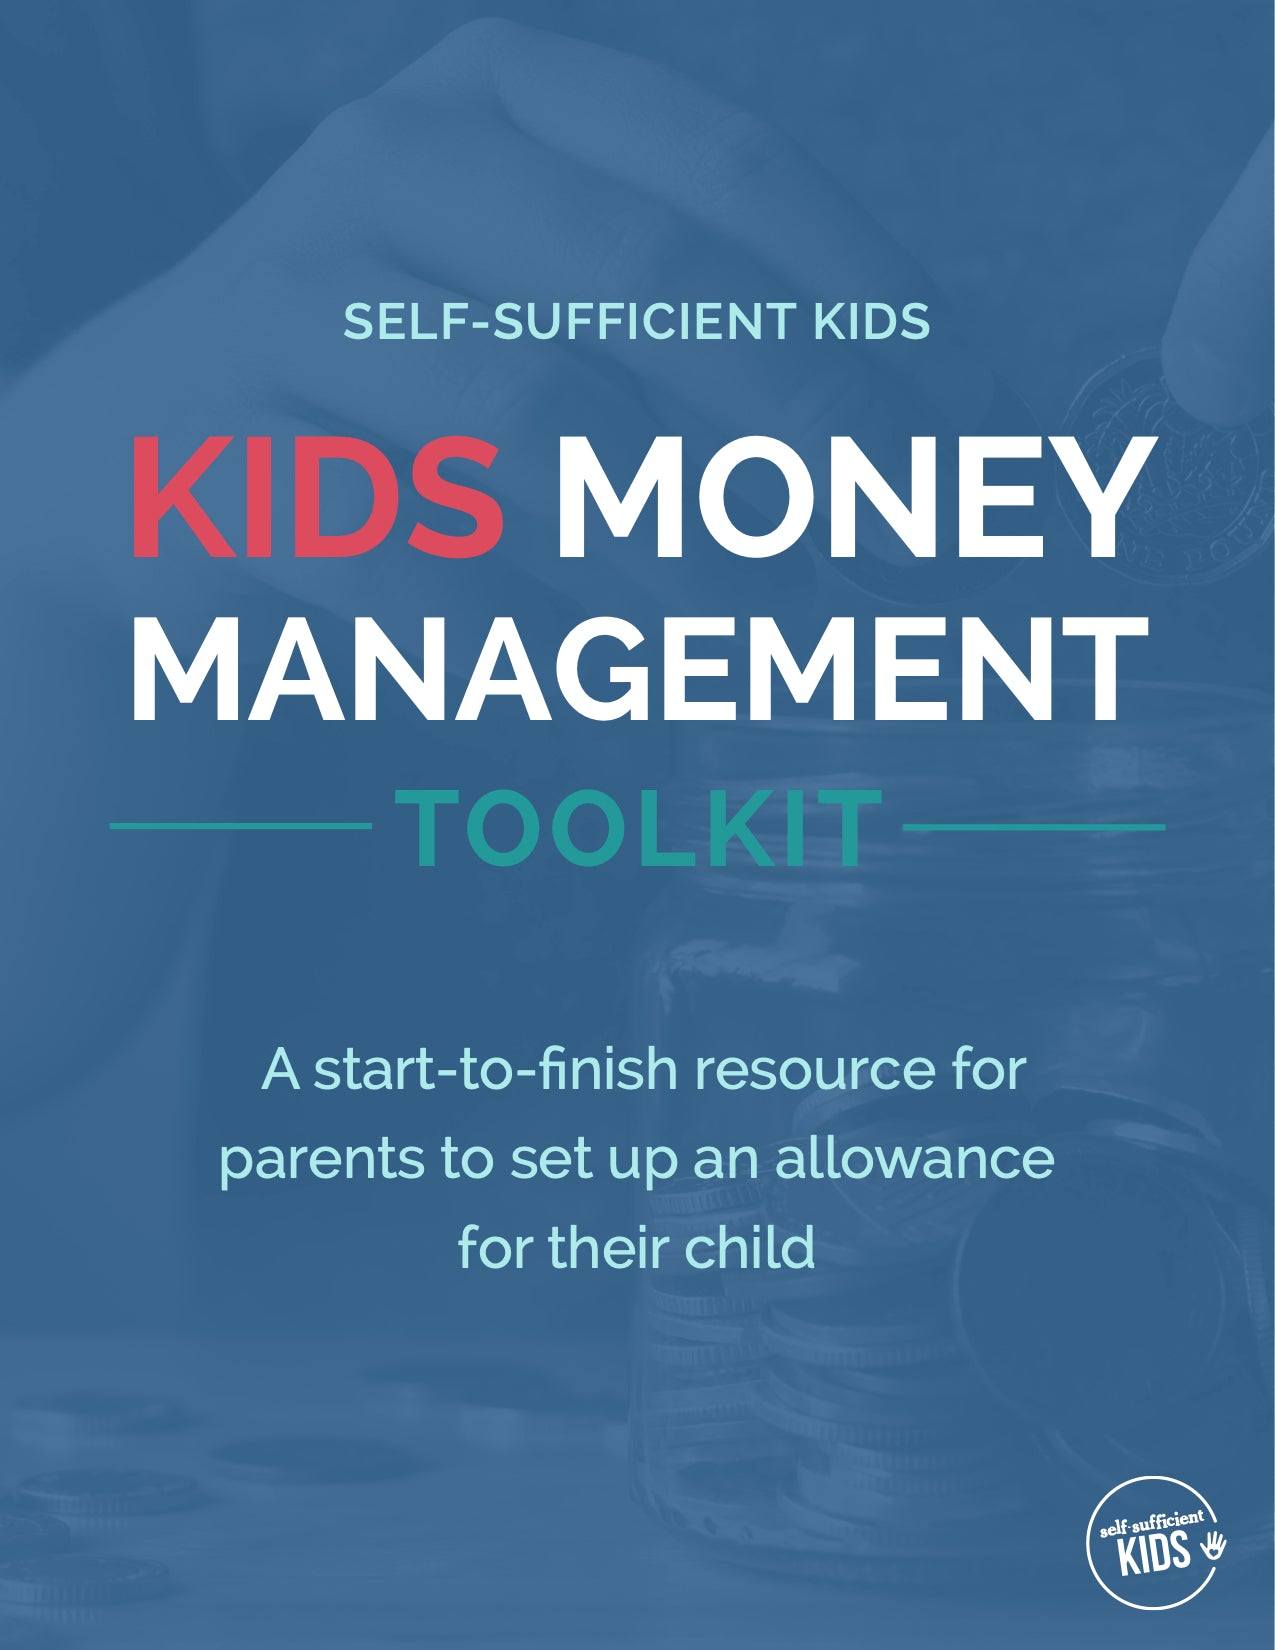 Kids Money Management and Allowance Toolkit